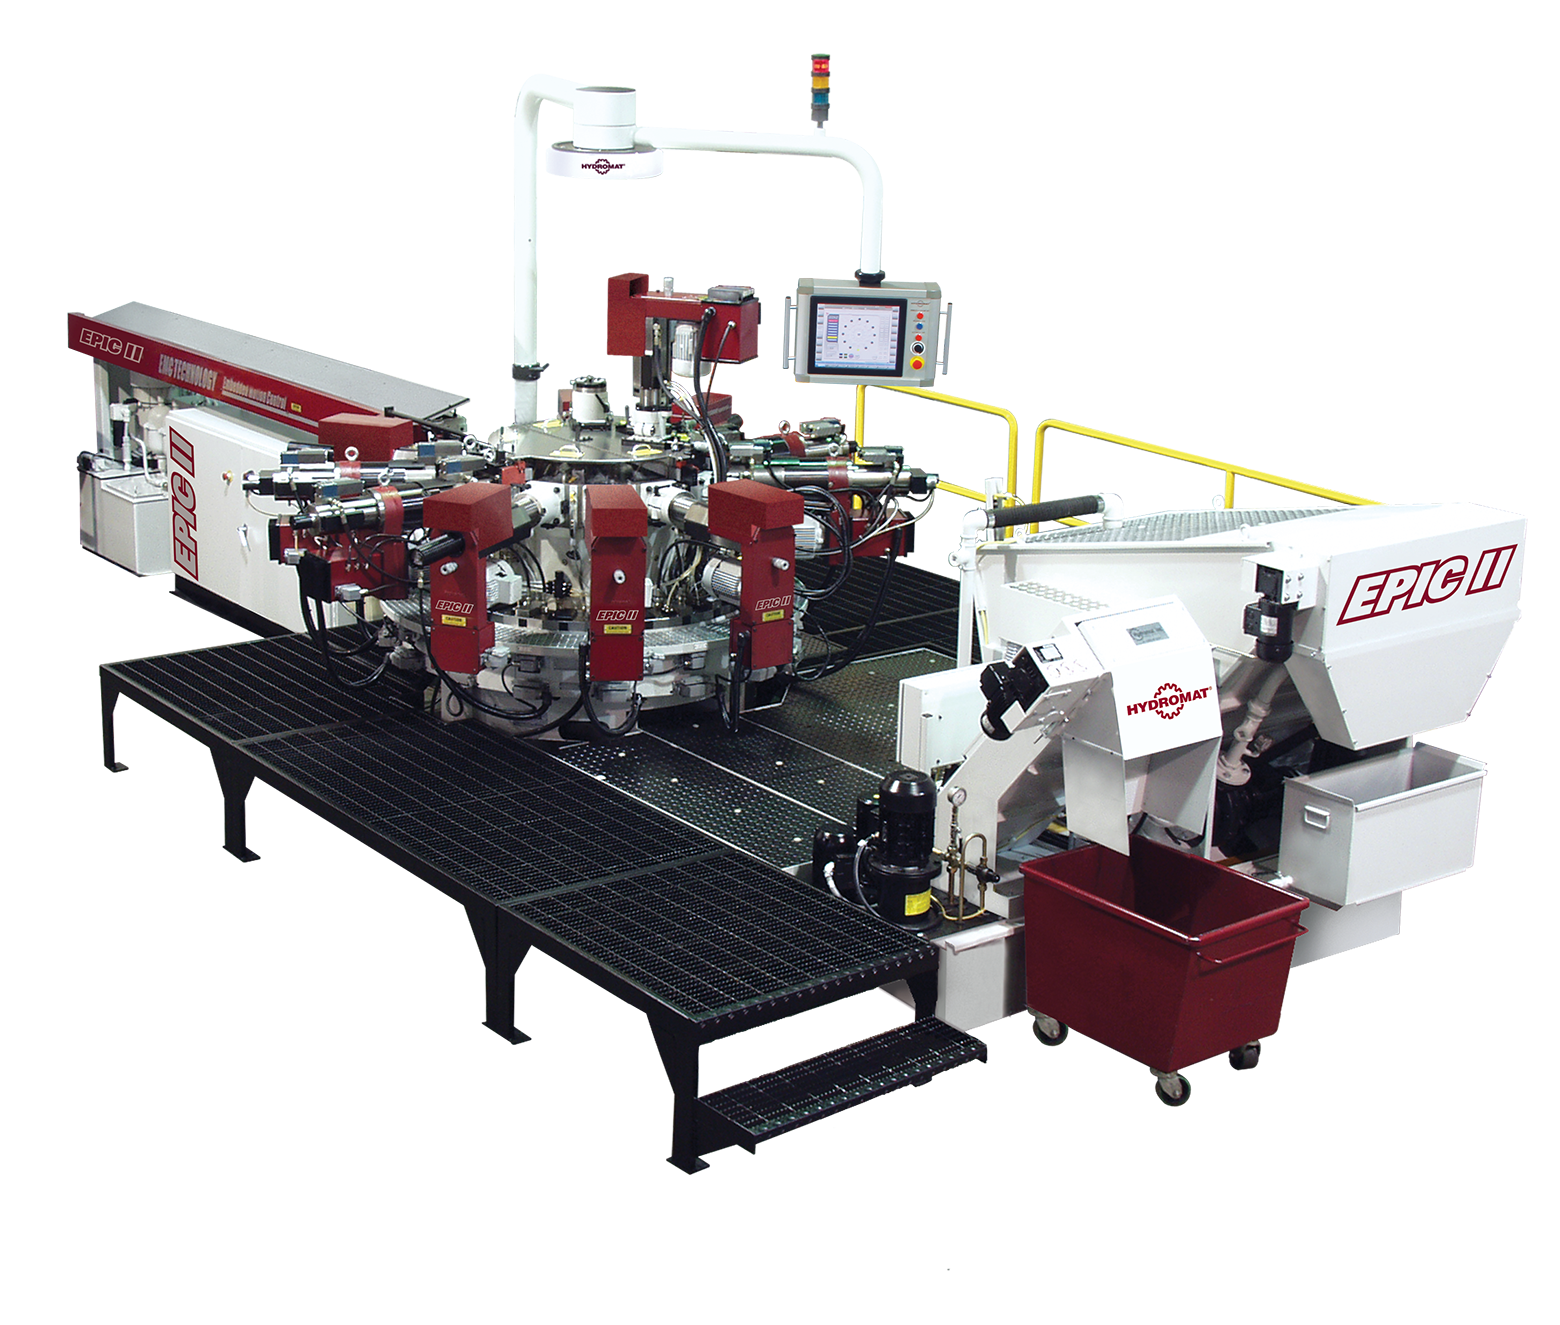 Hydromat EPIC II 25-12 Rotary Transfer Machine image